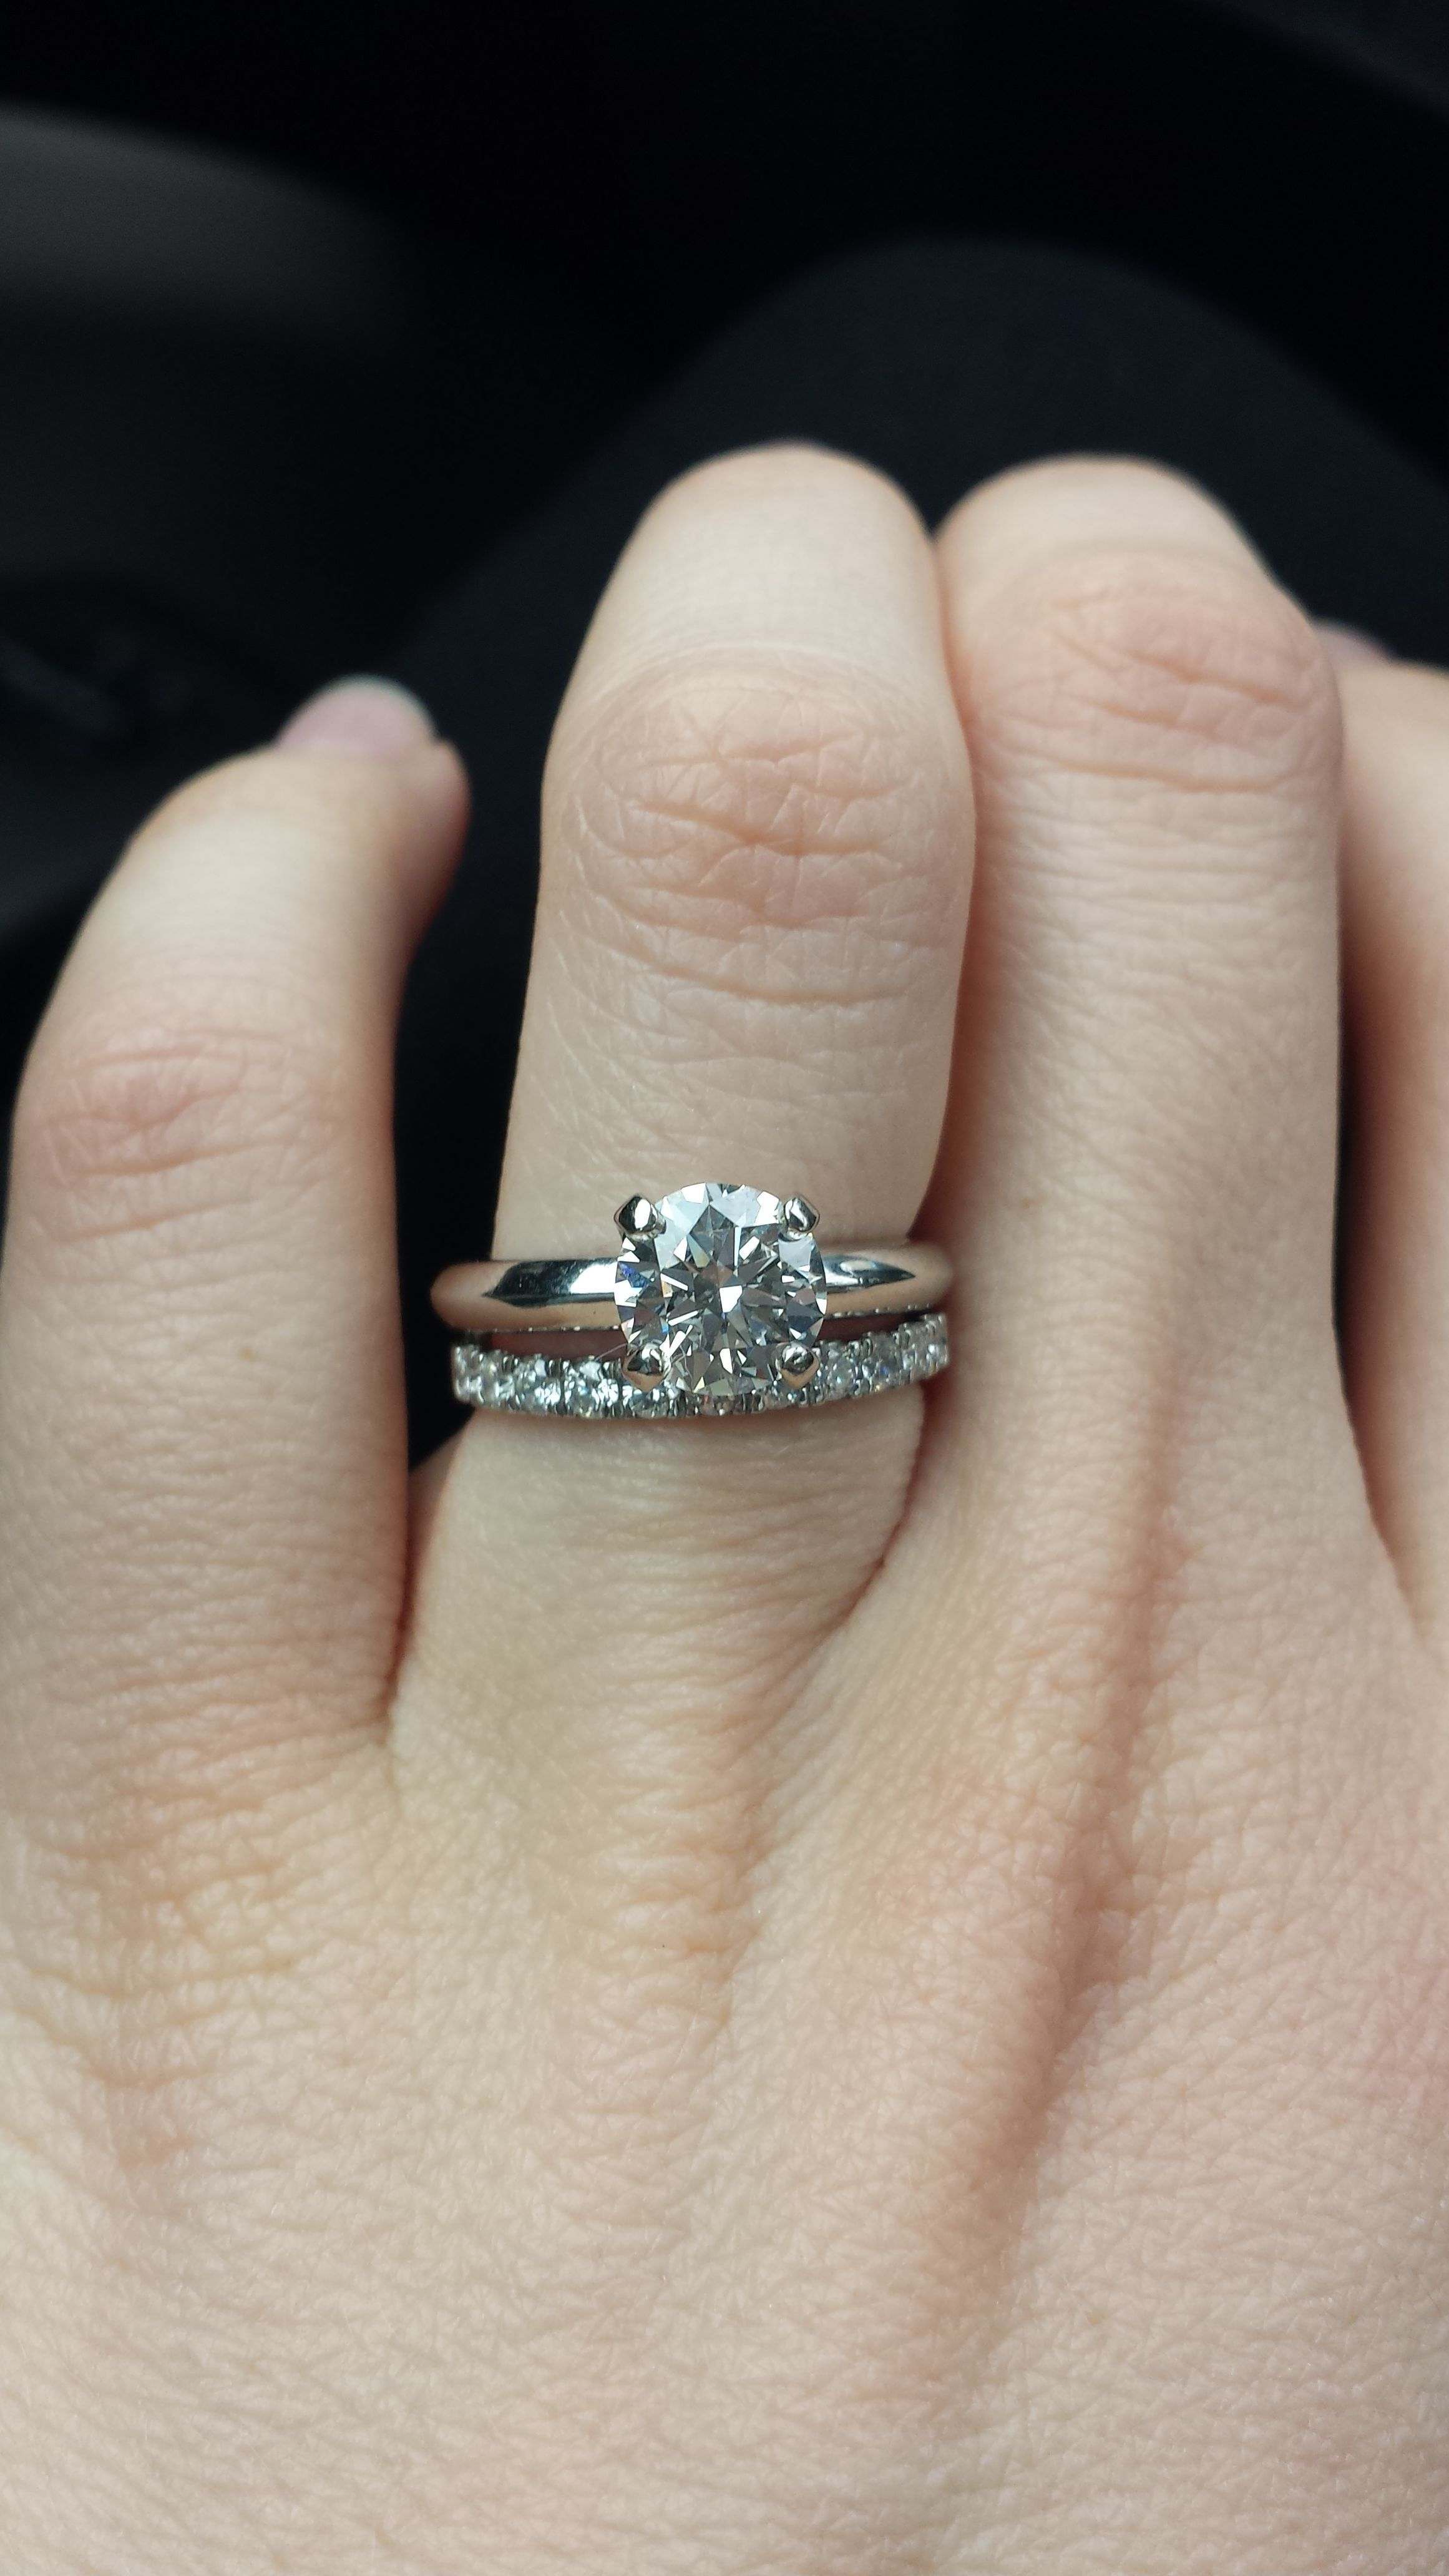 Show me your wedding band with Tiffany/style solitaire e